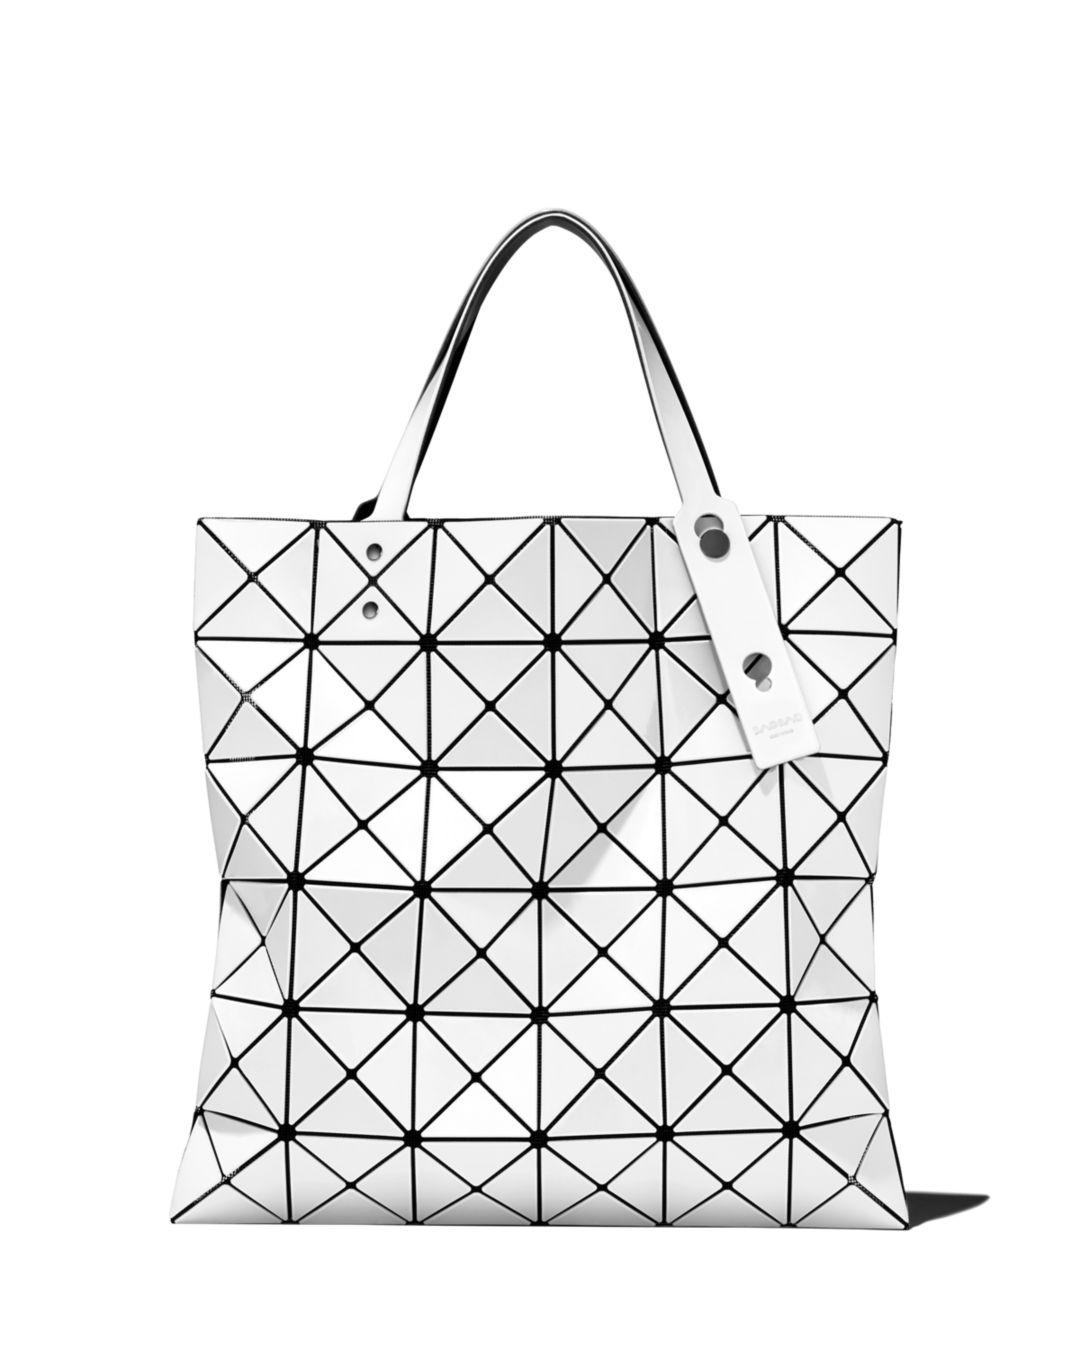 Lyst - Bao Bao Issey Miyake Lucent Tote in White f7bc13a2609be